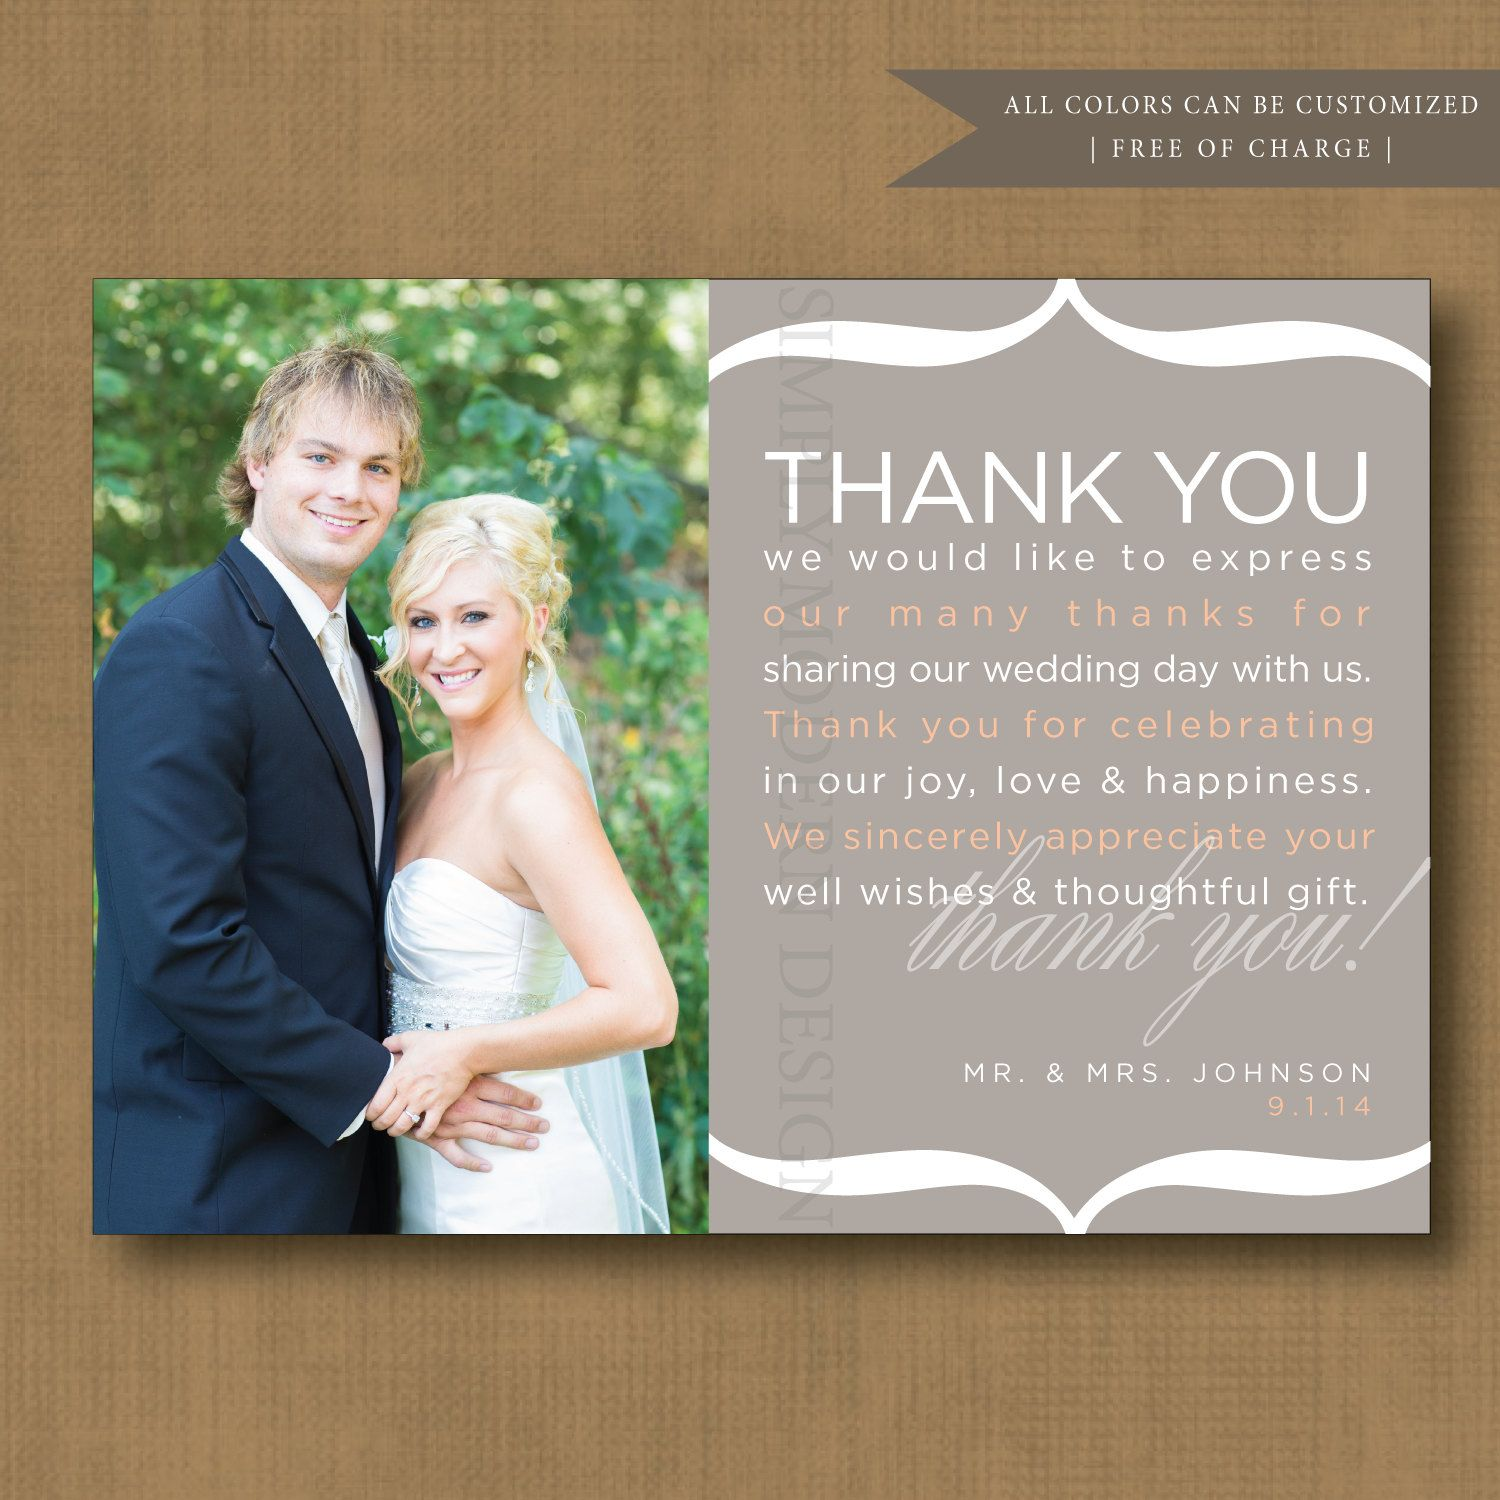 thank you note wedding thank you card PRINTABLE – Best Wedding Thank You Card Wording